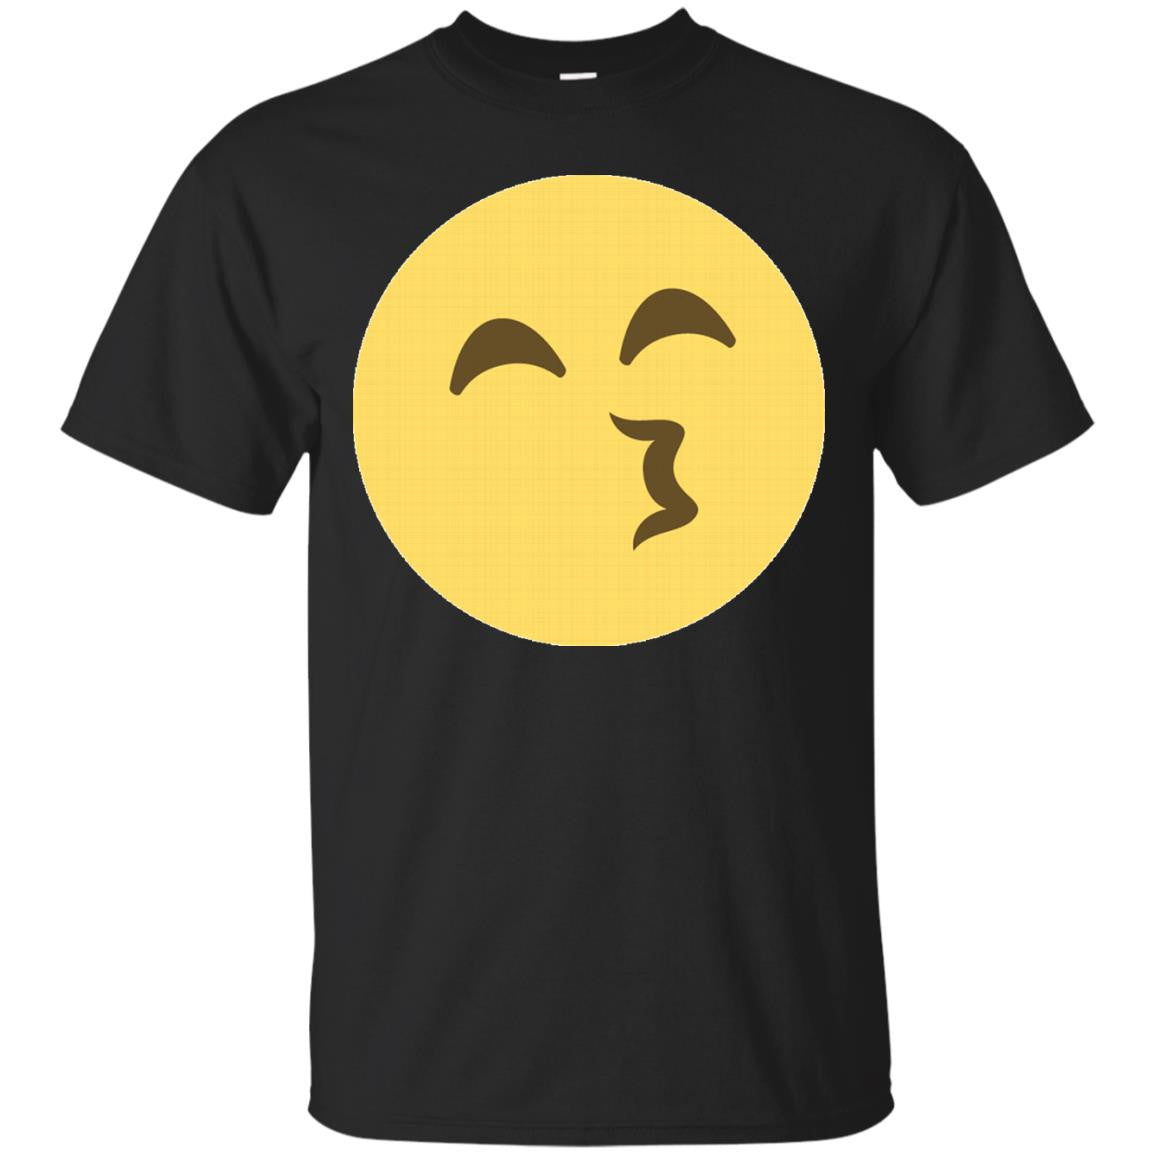 Whistling Emoji Face T-Shirt